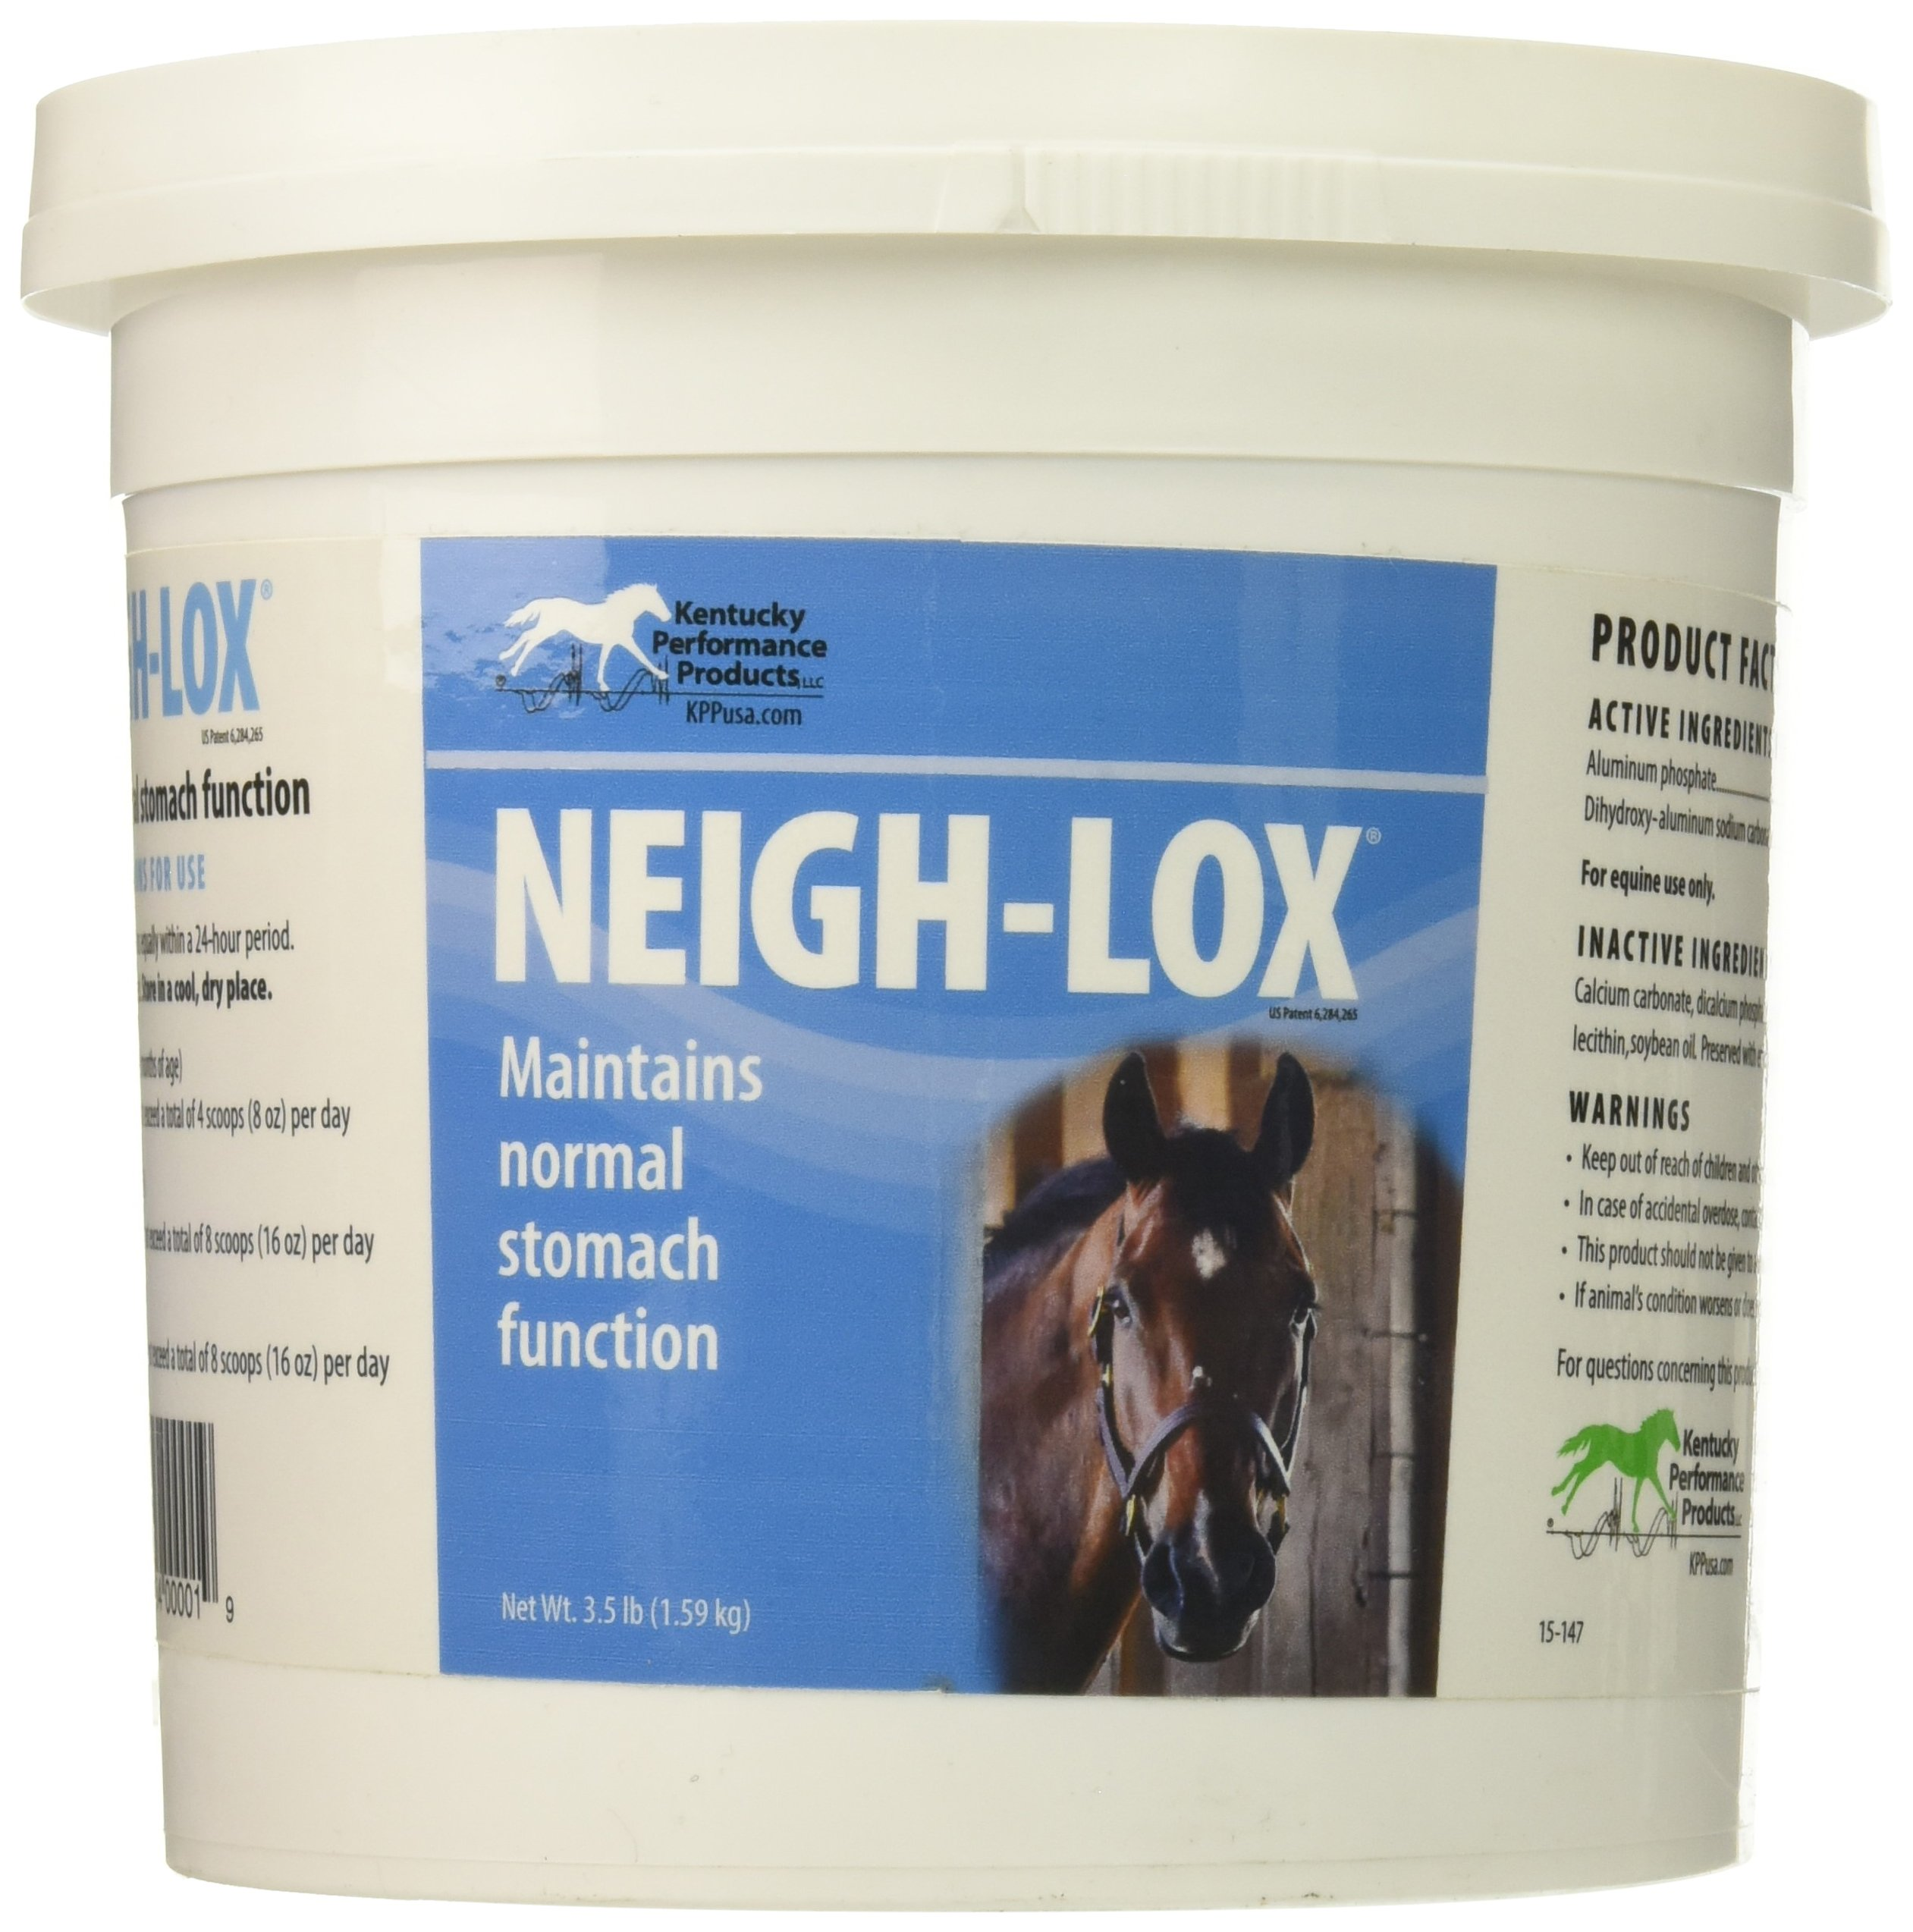 Kentucky Performance Neigh-Lox Digestive Supplement for Horses, 3.5 Pound Container by Kentucky Performance